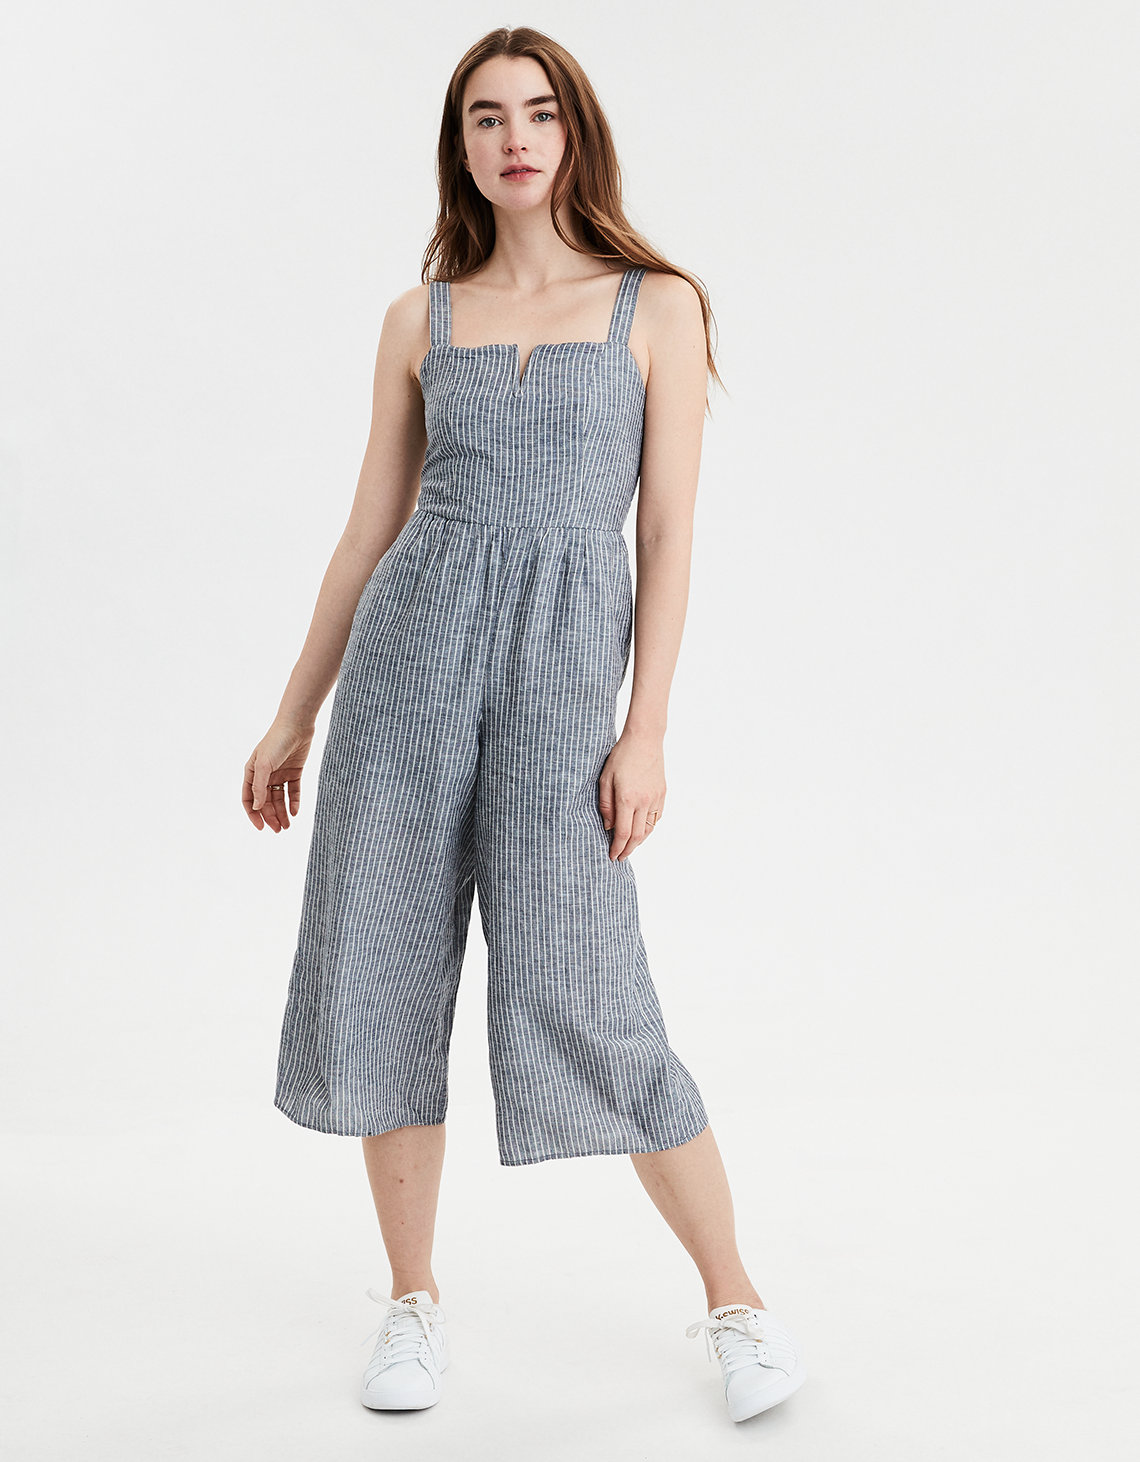 8778fabb9e2 AE V Neck Striped Jumpsuit. Placeholder image. Product Image